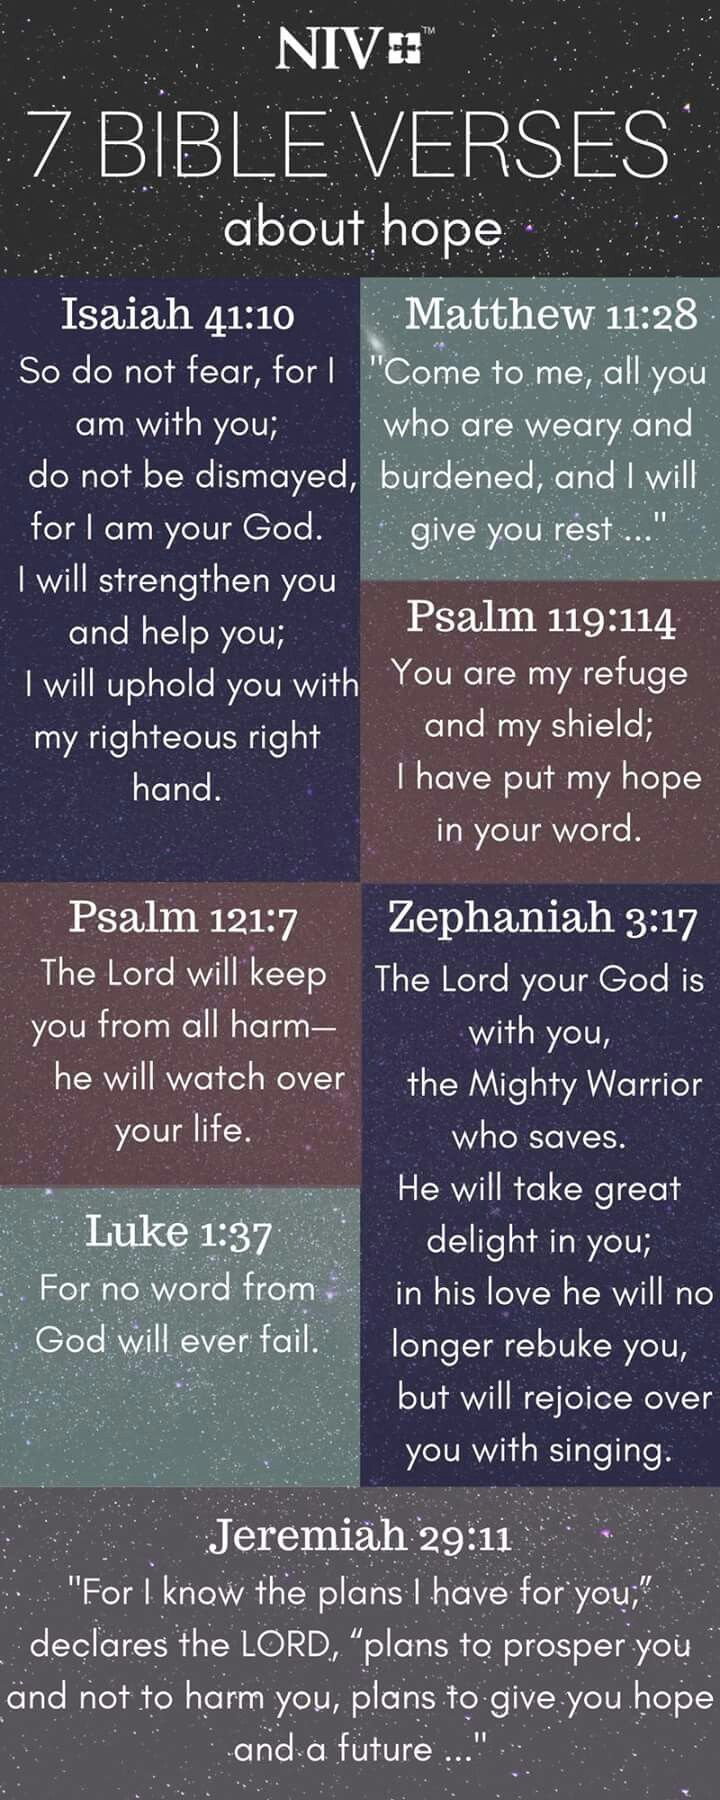 Pin By Cynthia Thomason On Bible Verses Bible Verses Bible Bible